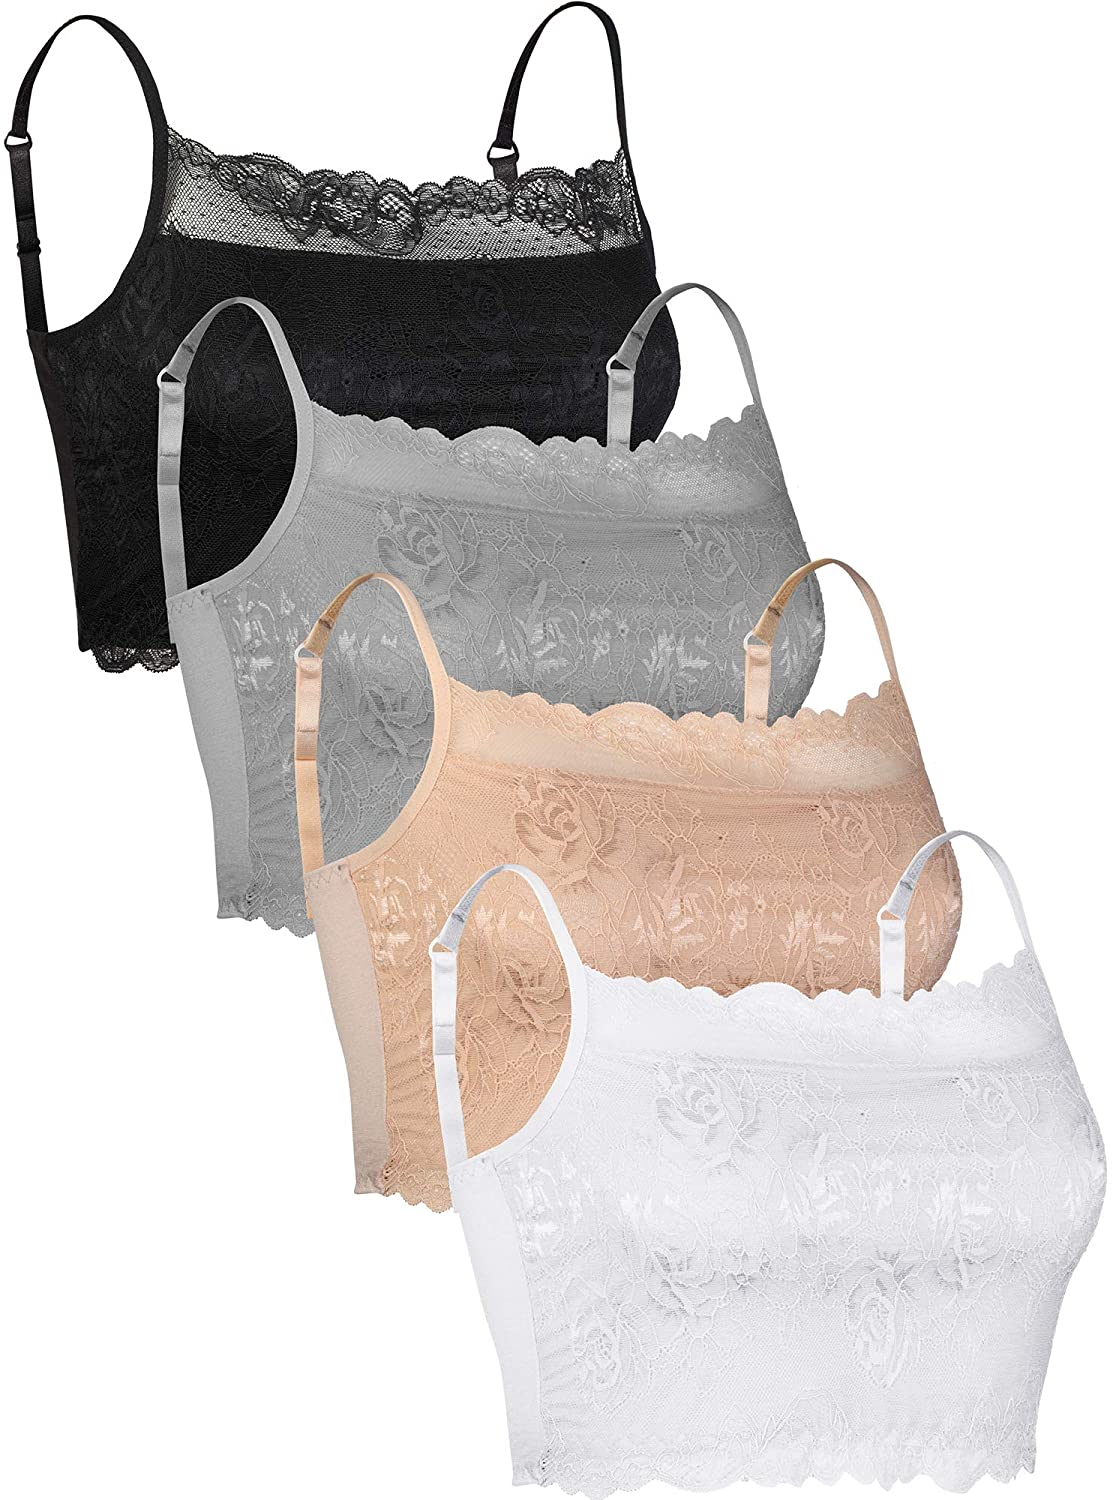 Trounistro 4 Pieces Lace Cami Half Lace Camisole Lace Half Bralette Lace Bralette Top Lace Tube Top Bra for Women Girls